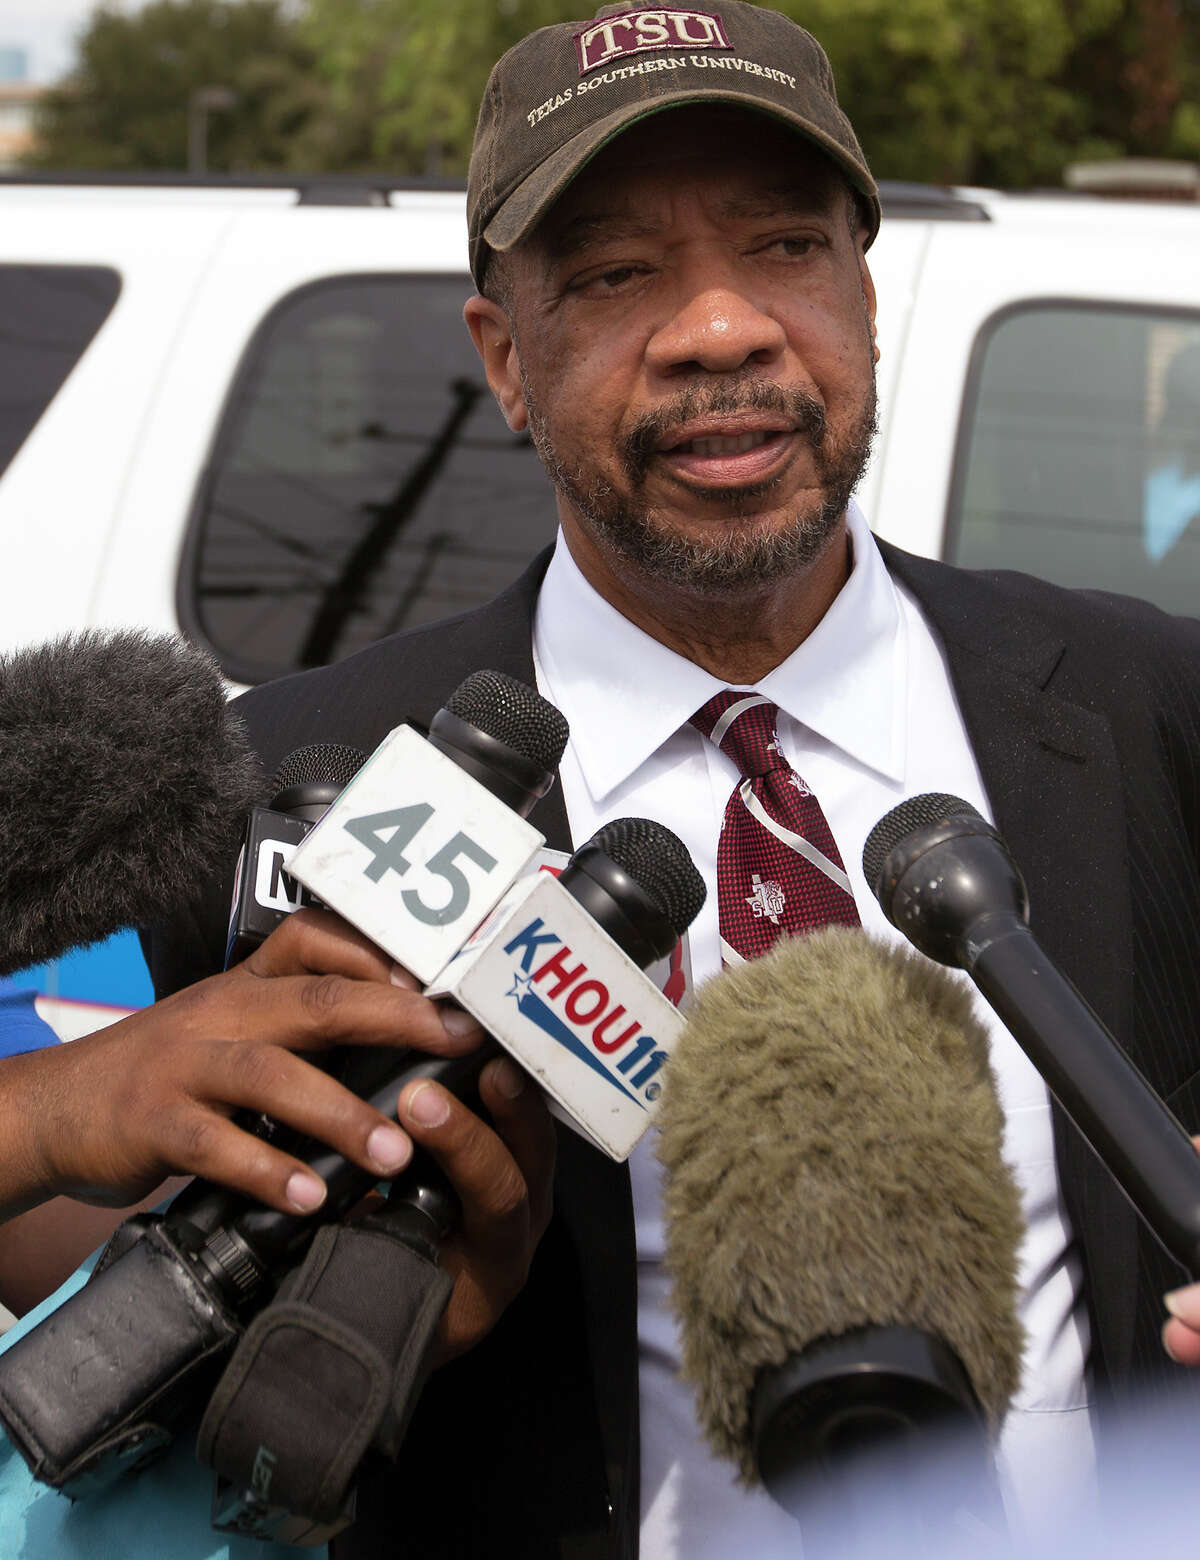 """Texas Southern University President John Rudley speaks to the media after Friday's shooting. The freshman who was shot to death was """"a beautiful young man, trying to get his life together,"""" Rudley said."""